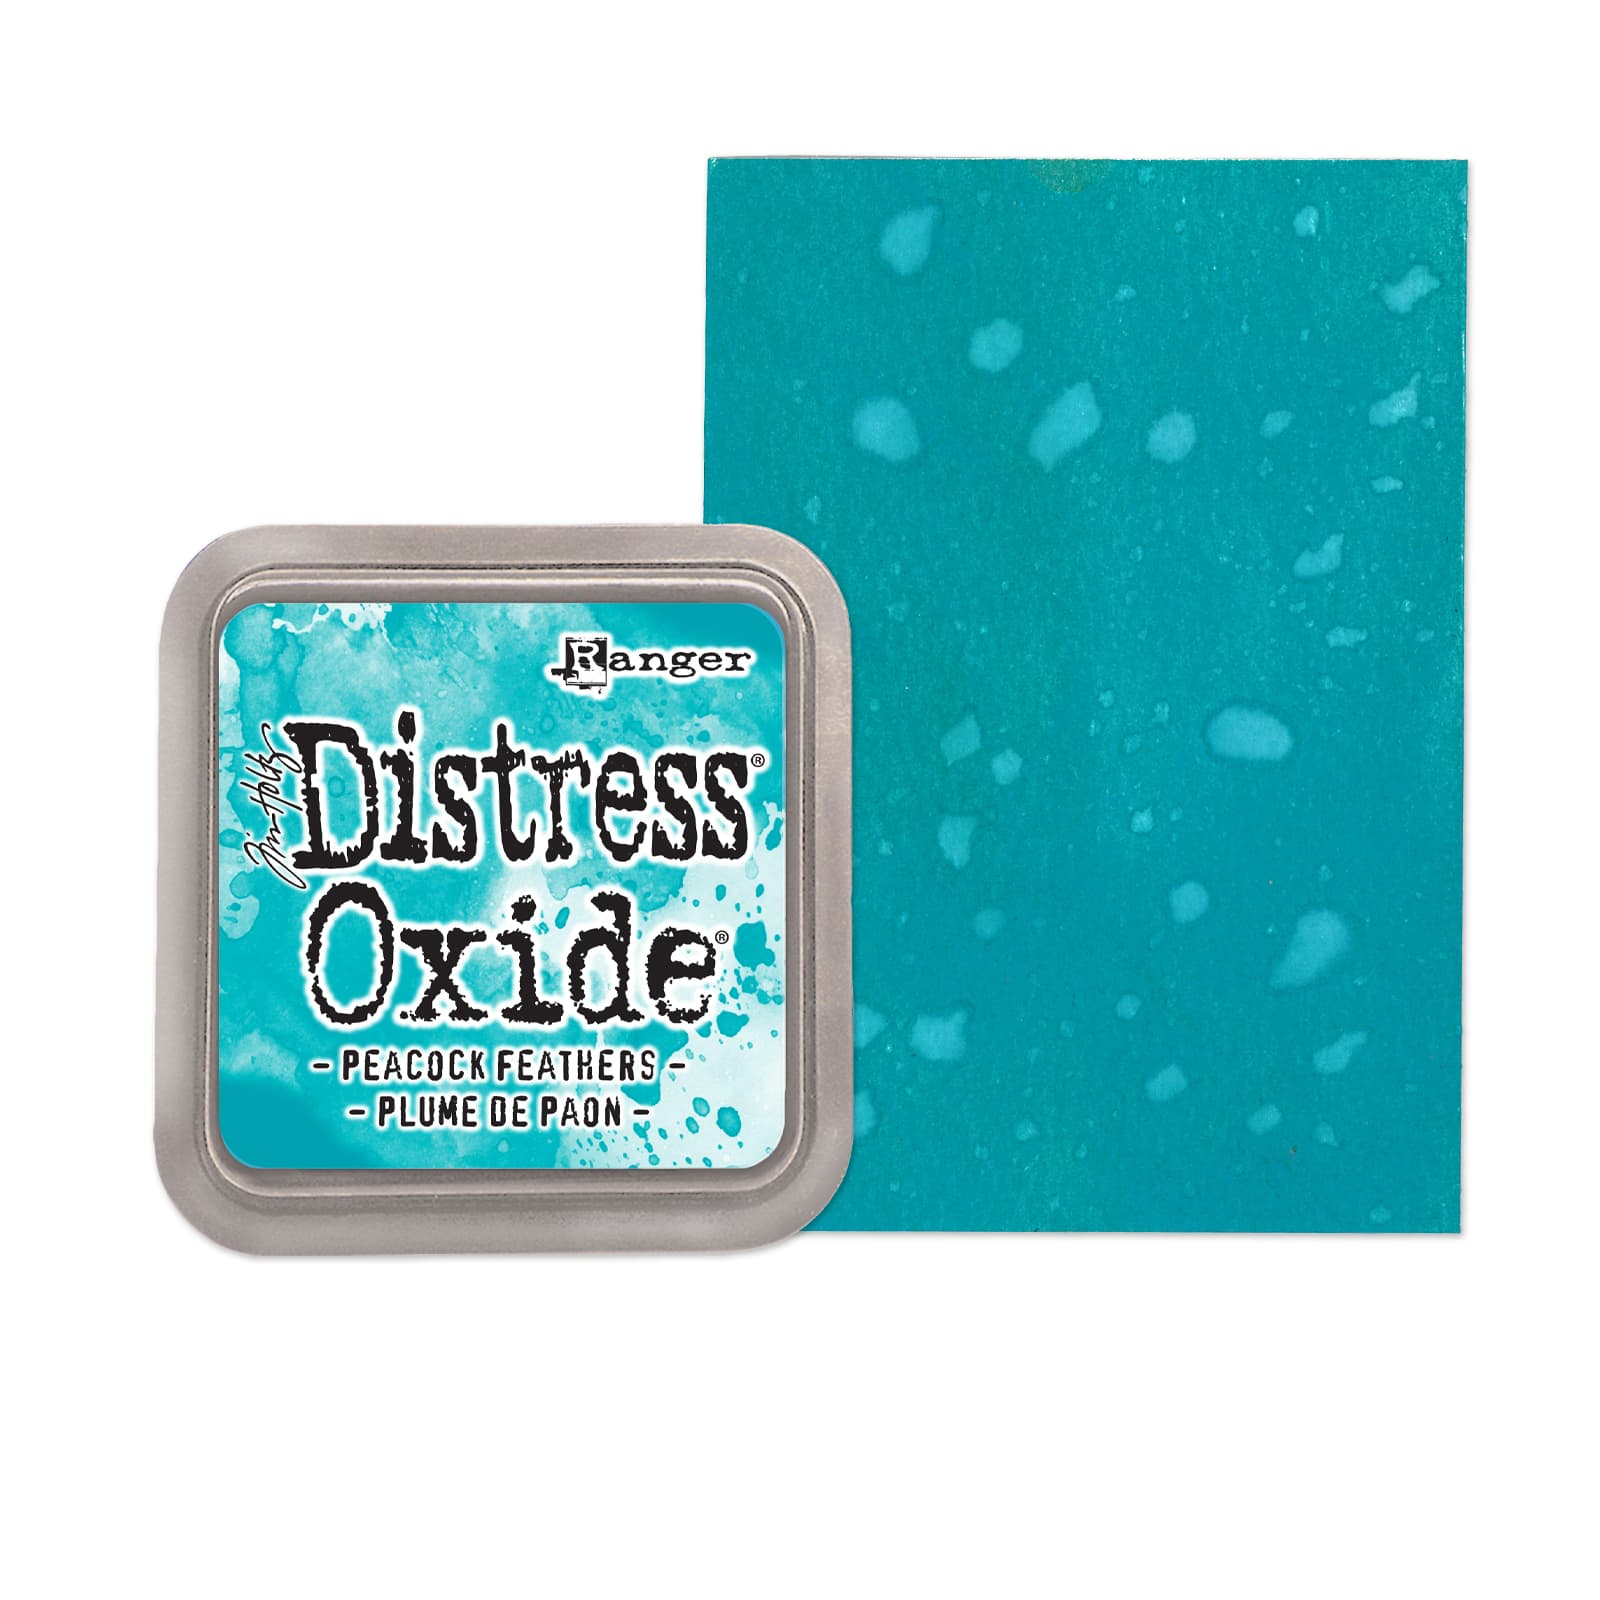 Squeezed Lemonade* Set of 3 Tim Holtz Spring Distress Ink Pads//Peacock Feathers